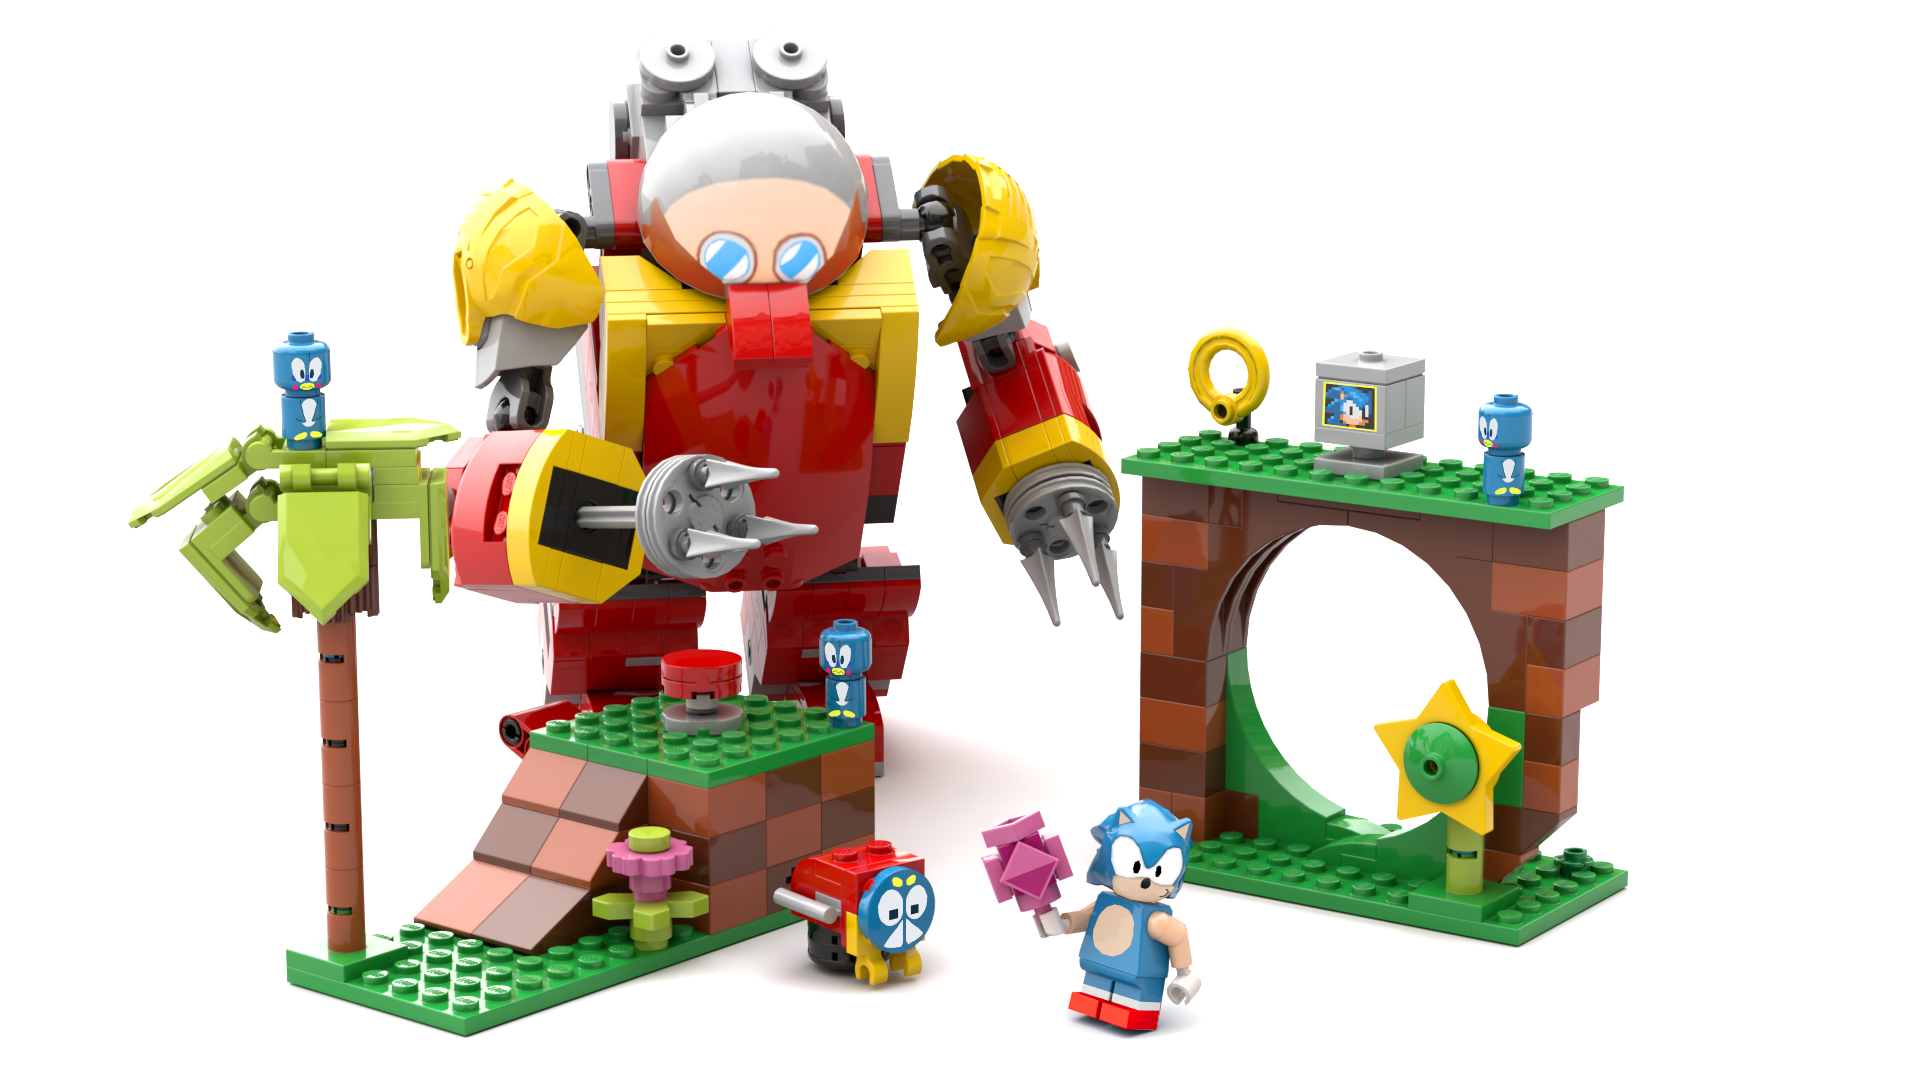 This Incredible Sonic The Hedgehog Lego Set Could Release If Fans Vote For It Vg247